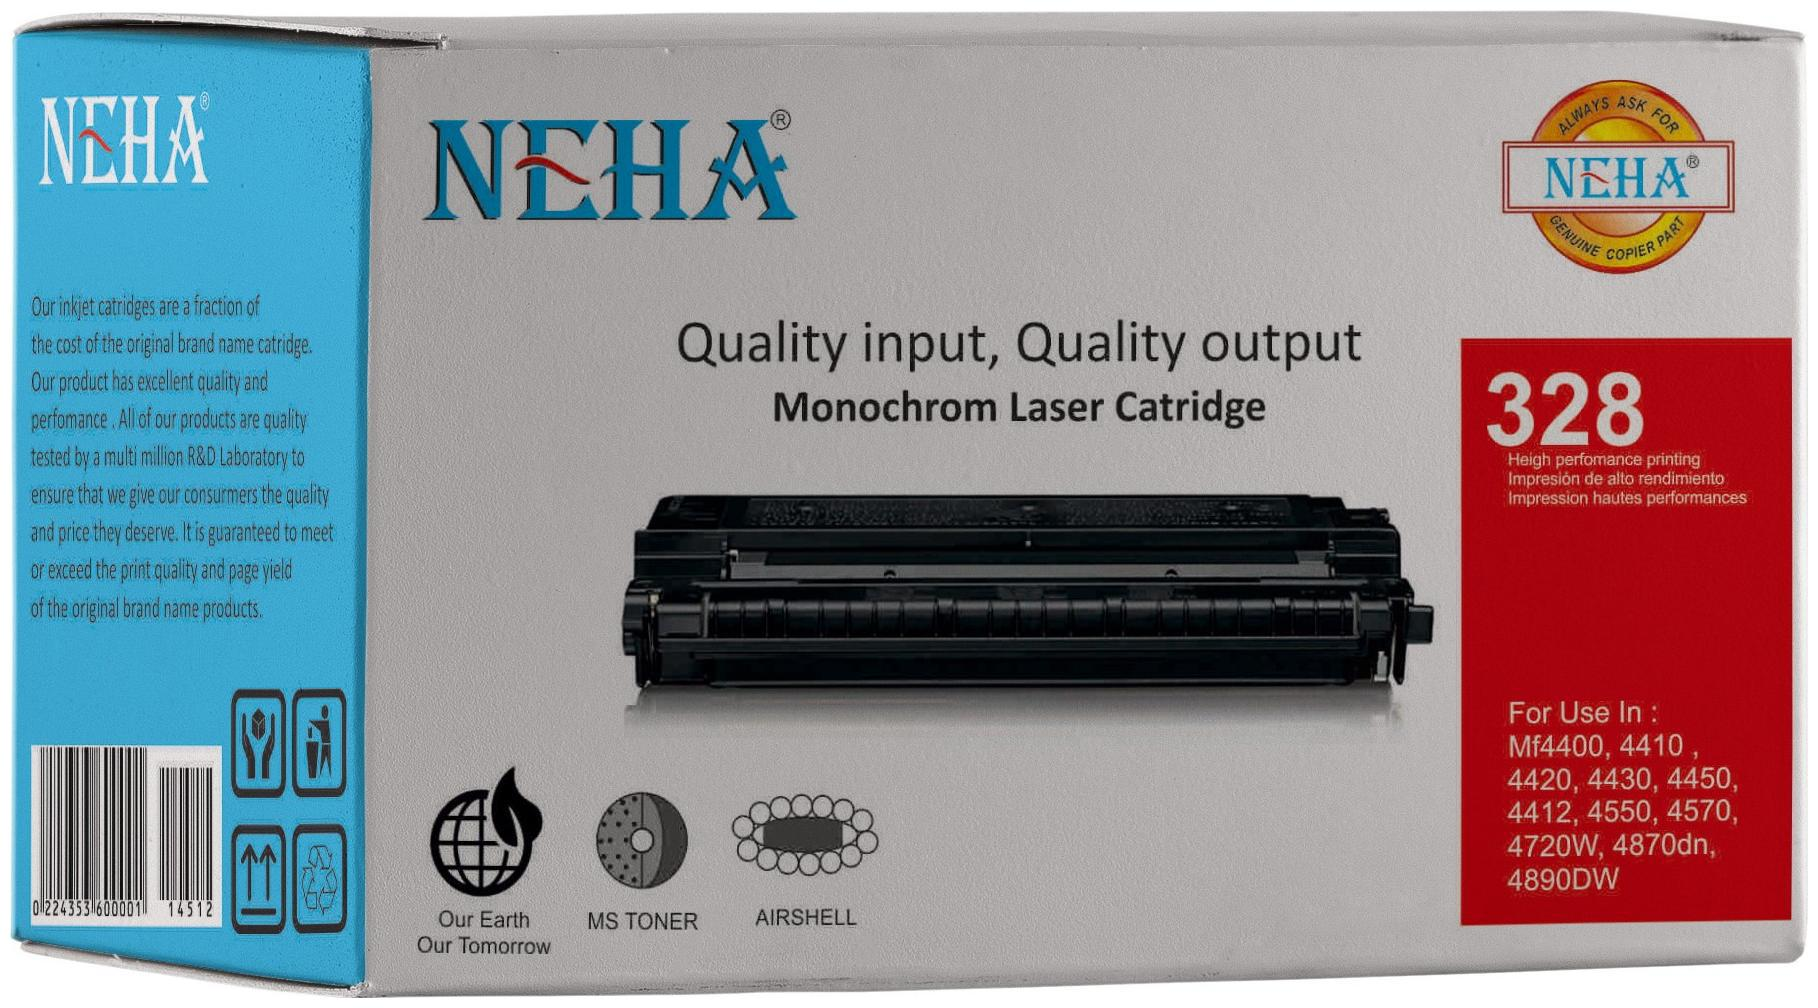 Neha 328 Compatible Laser Toner Cartridge for Canon MF4400, 4410, 4420, 4430, 4450, 4412, 4550, 4570, 4720w, 4750, 4870dn, 4890dw